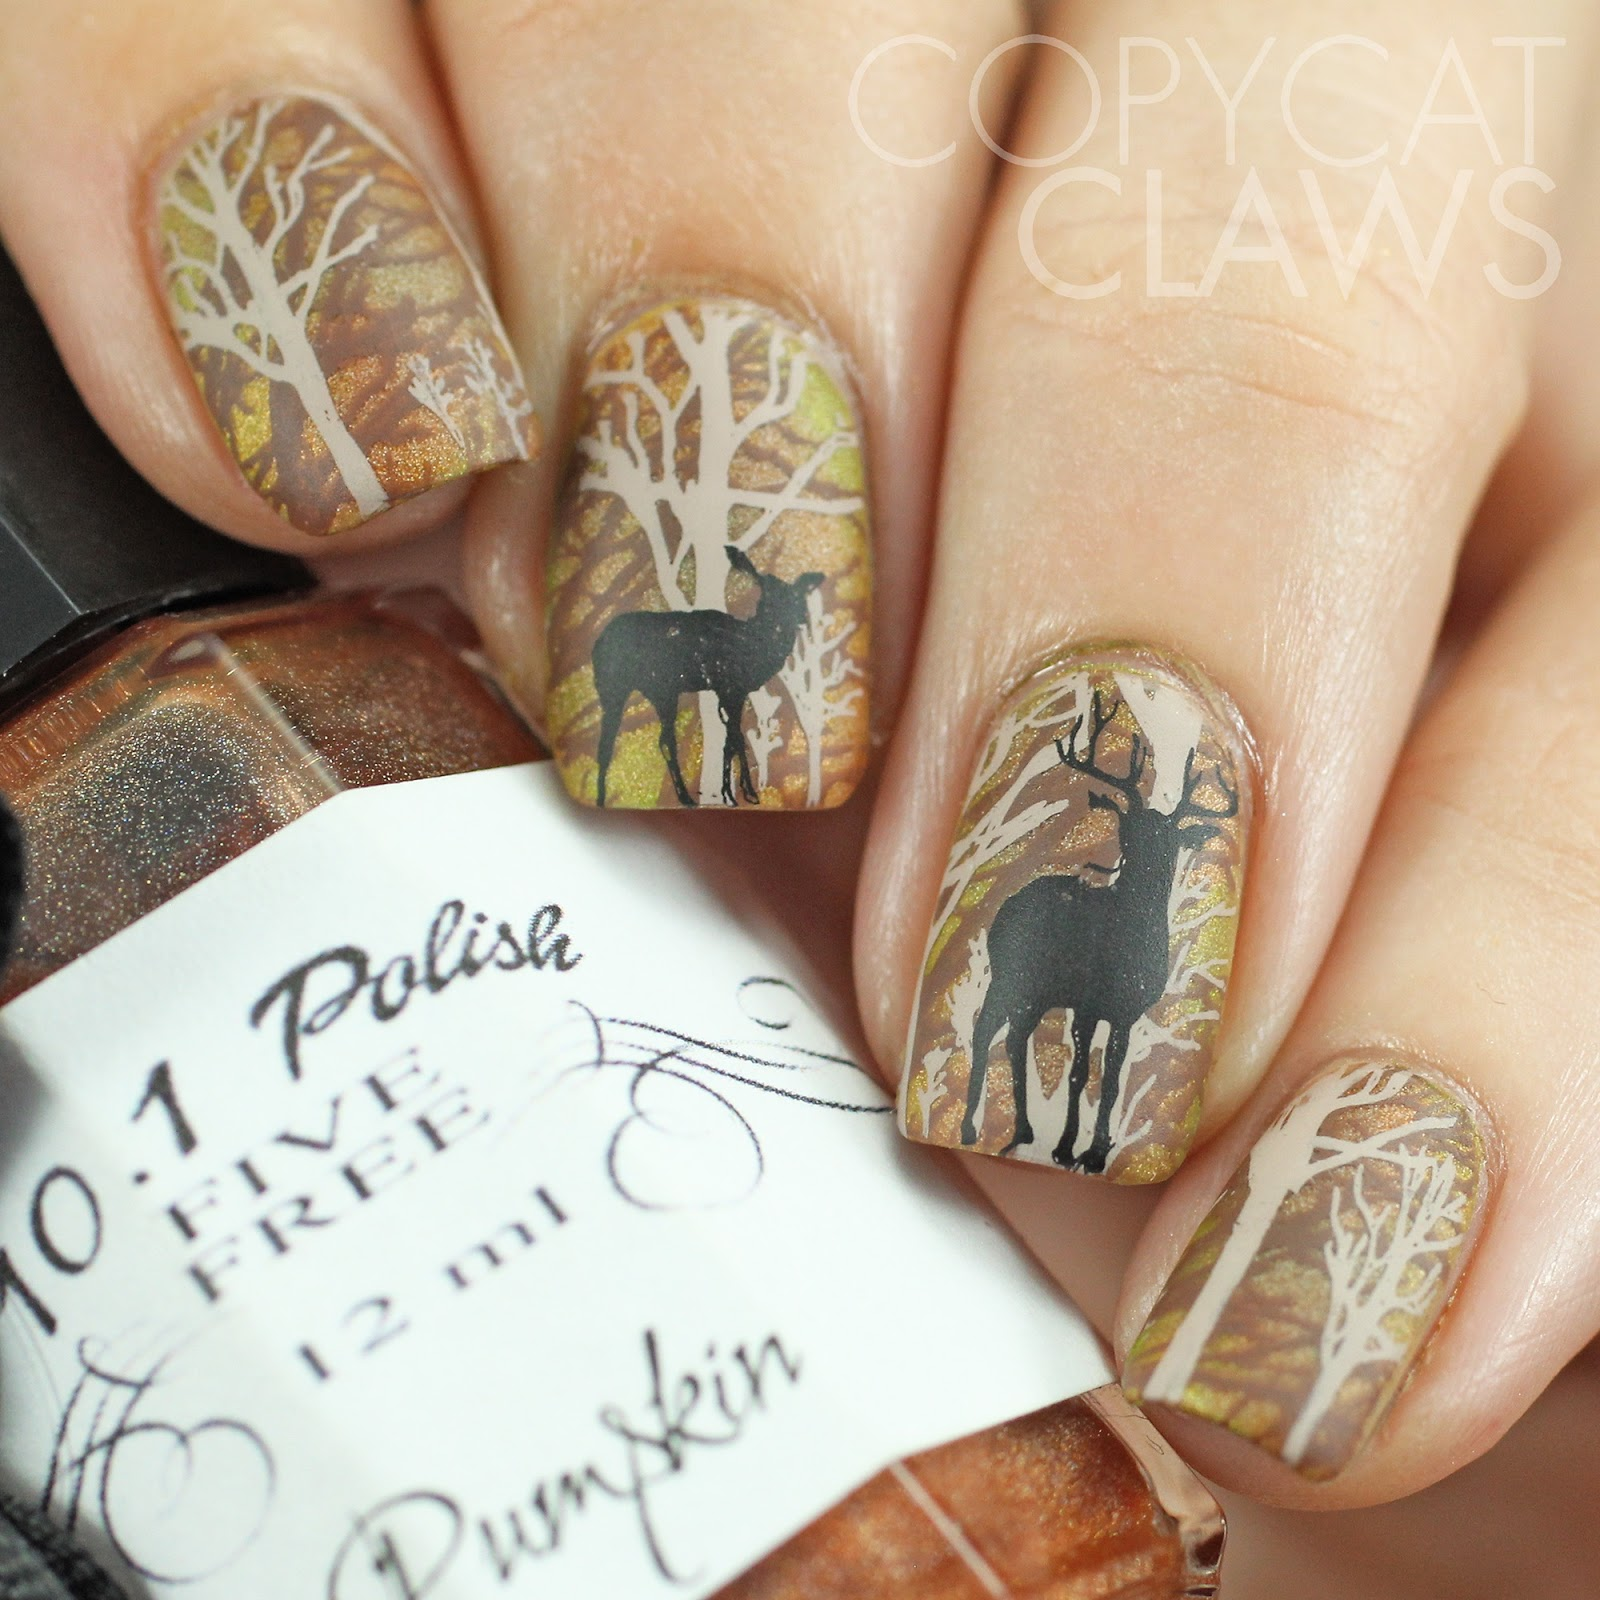 Copycat Claws: The Digit-al Dozen does Autumn – Day 2 Deer In The Woods